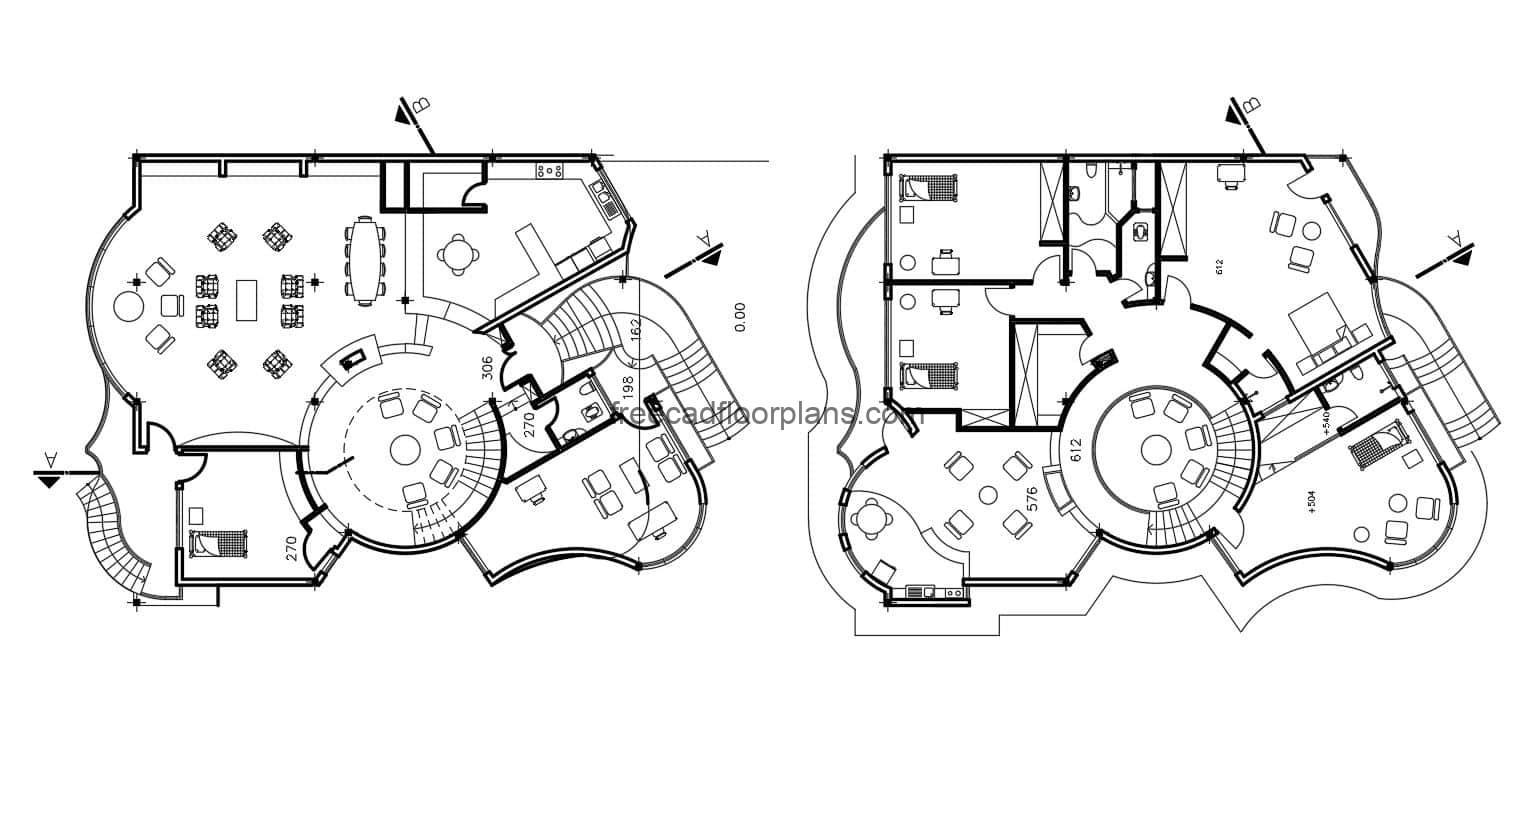 House with integrated circular shapes, three levels and modern style, complete architectural design and dimensional drawings in Autocad DWG format for free download. The house has parking for several vehicles, and five bedrooms in total. editable house blueprints, autocad interior blocks